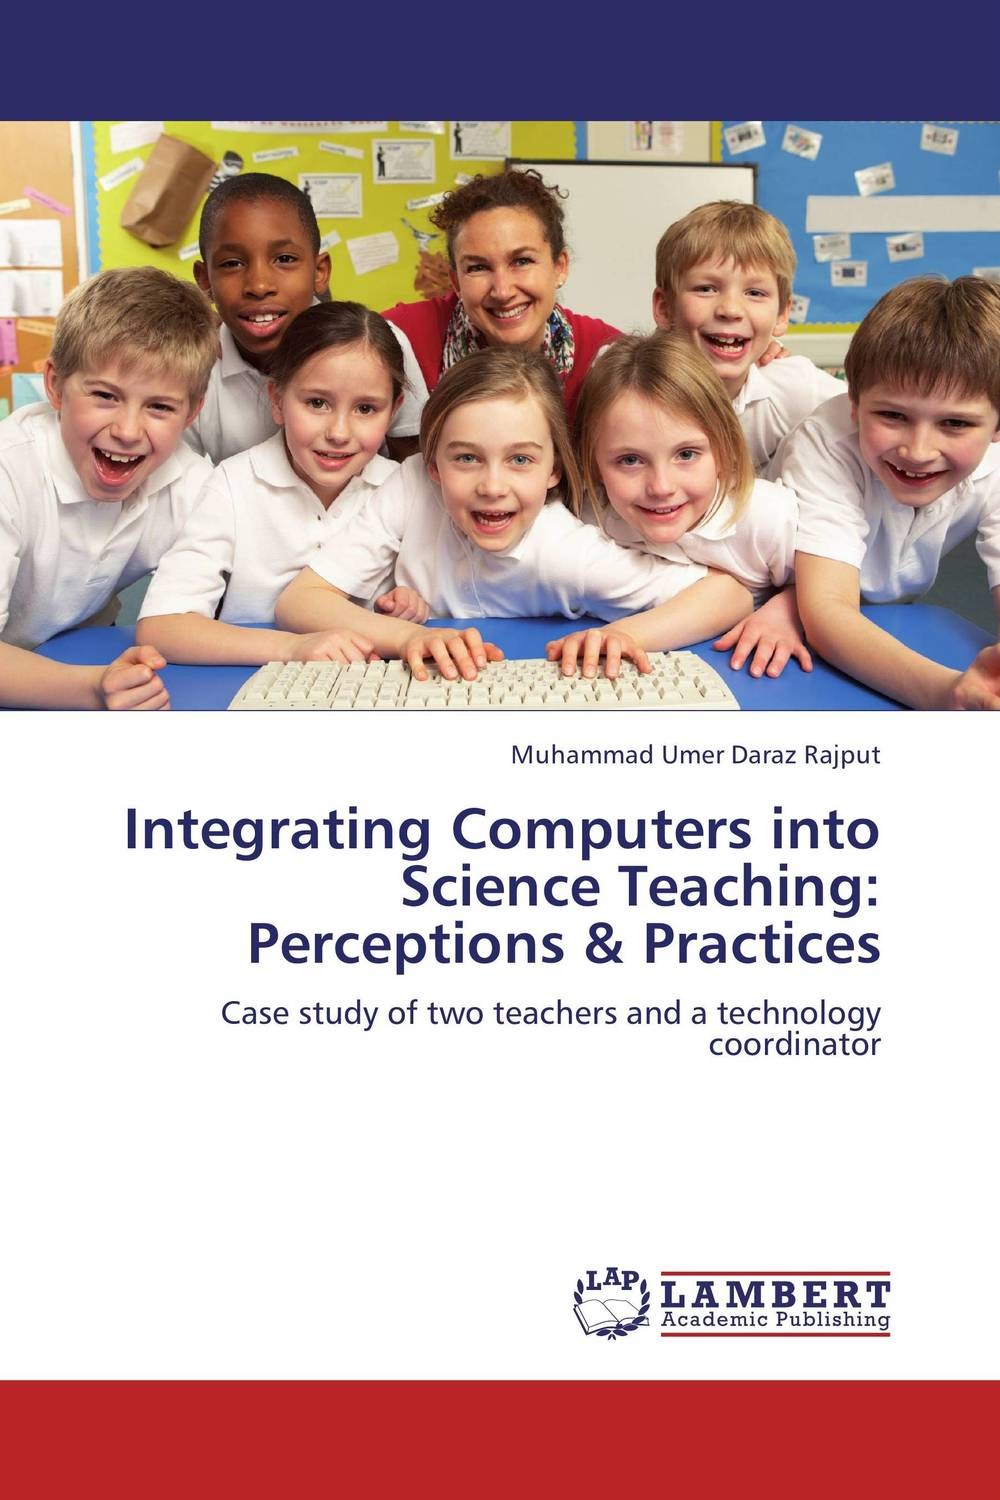 Integrating Computers into Science Teaching: Perceptions & Practices the use of song lyrics in teaching english tenses